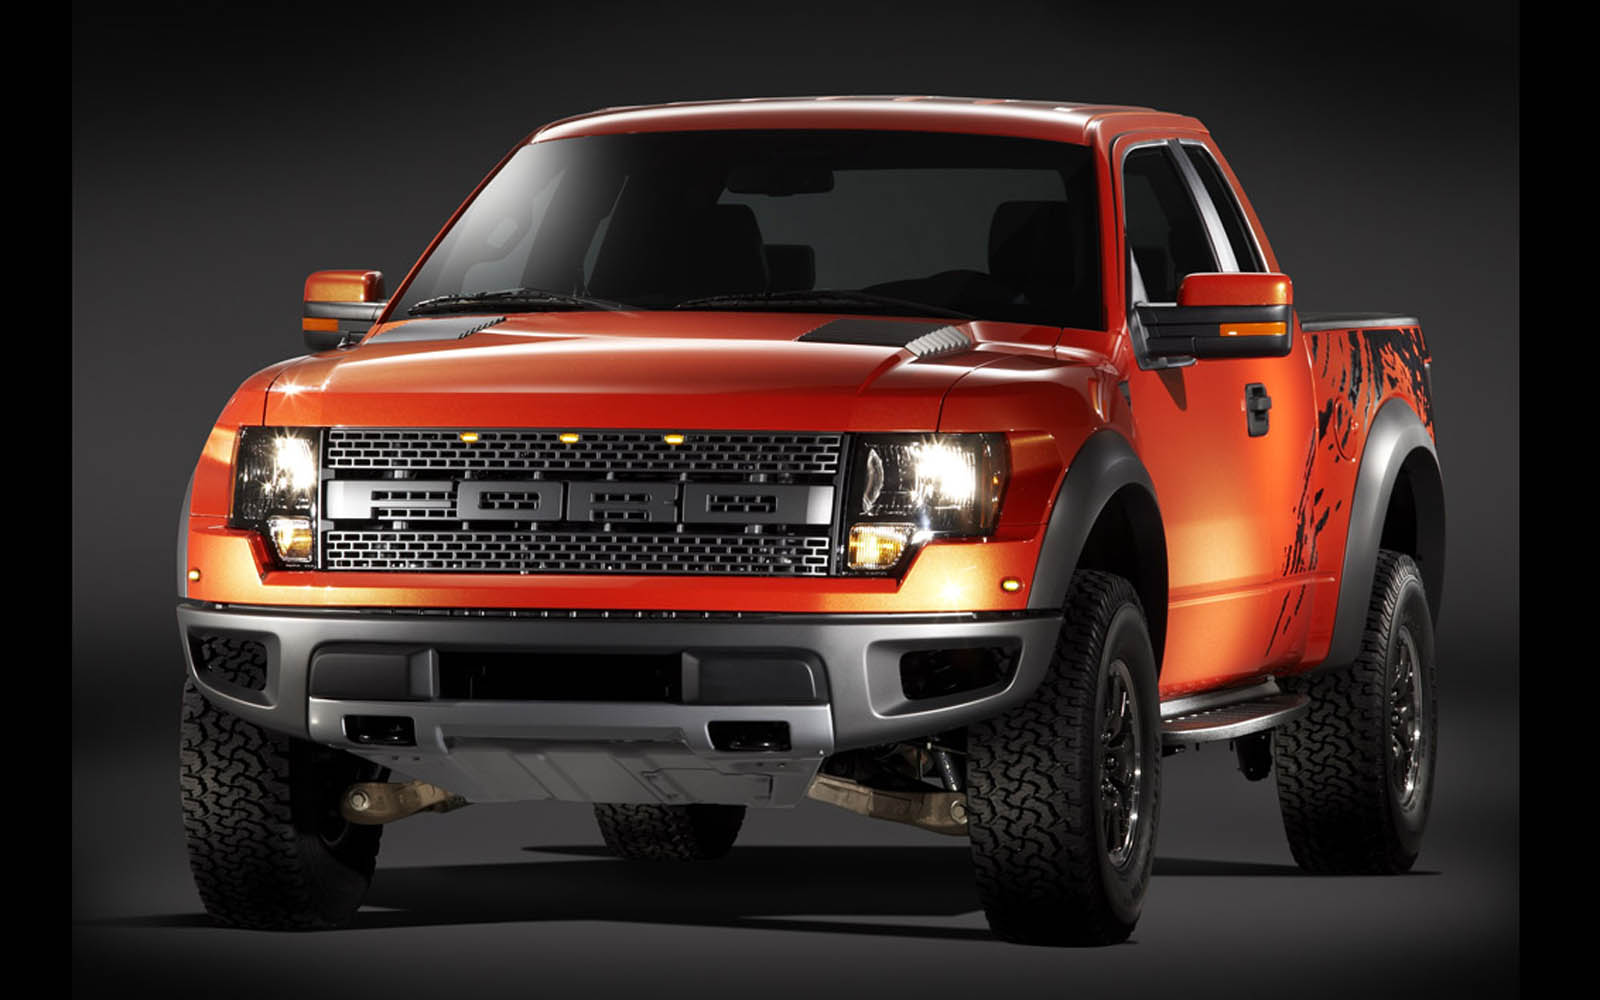 tag ford f 150 svt raptor wallpapers images paos and pictures for 1600x1000